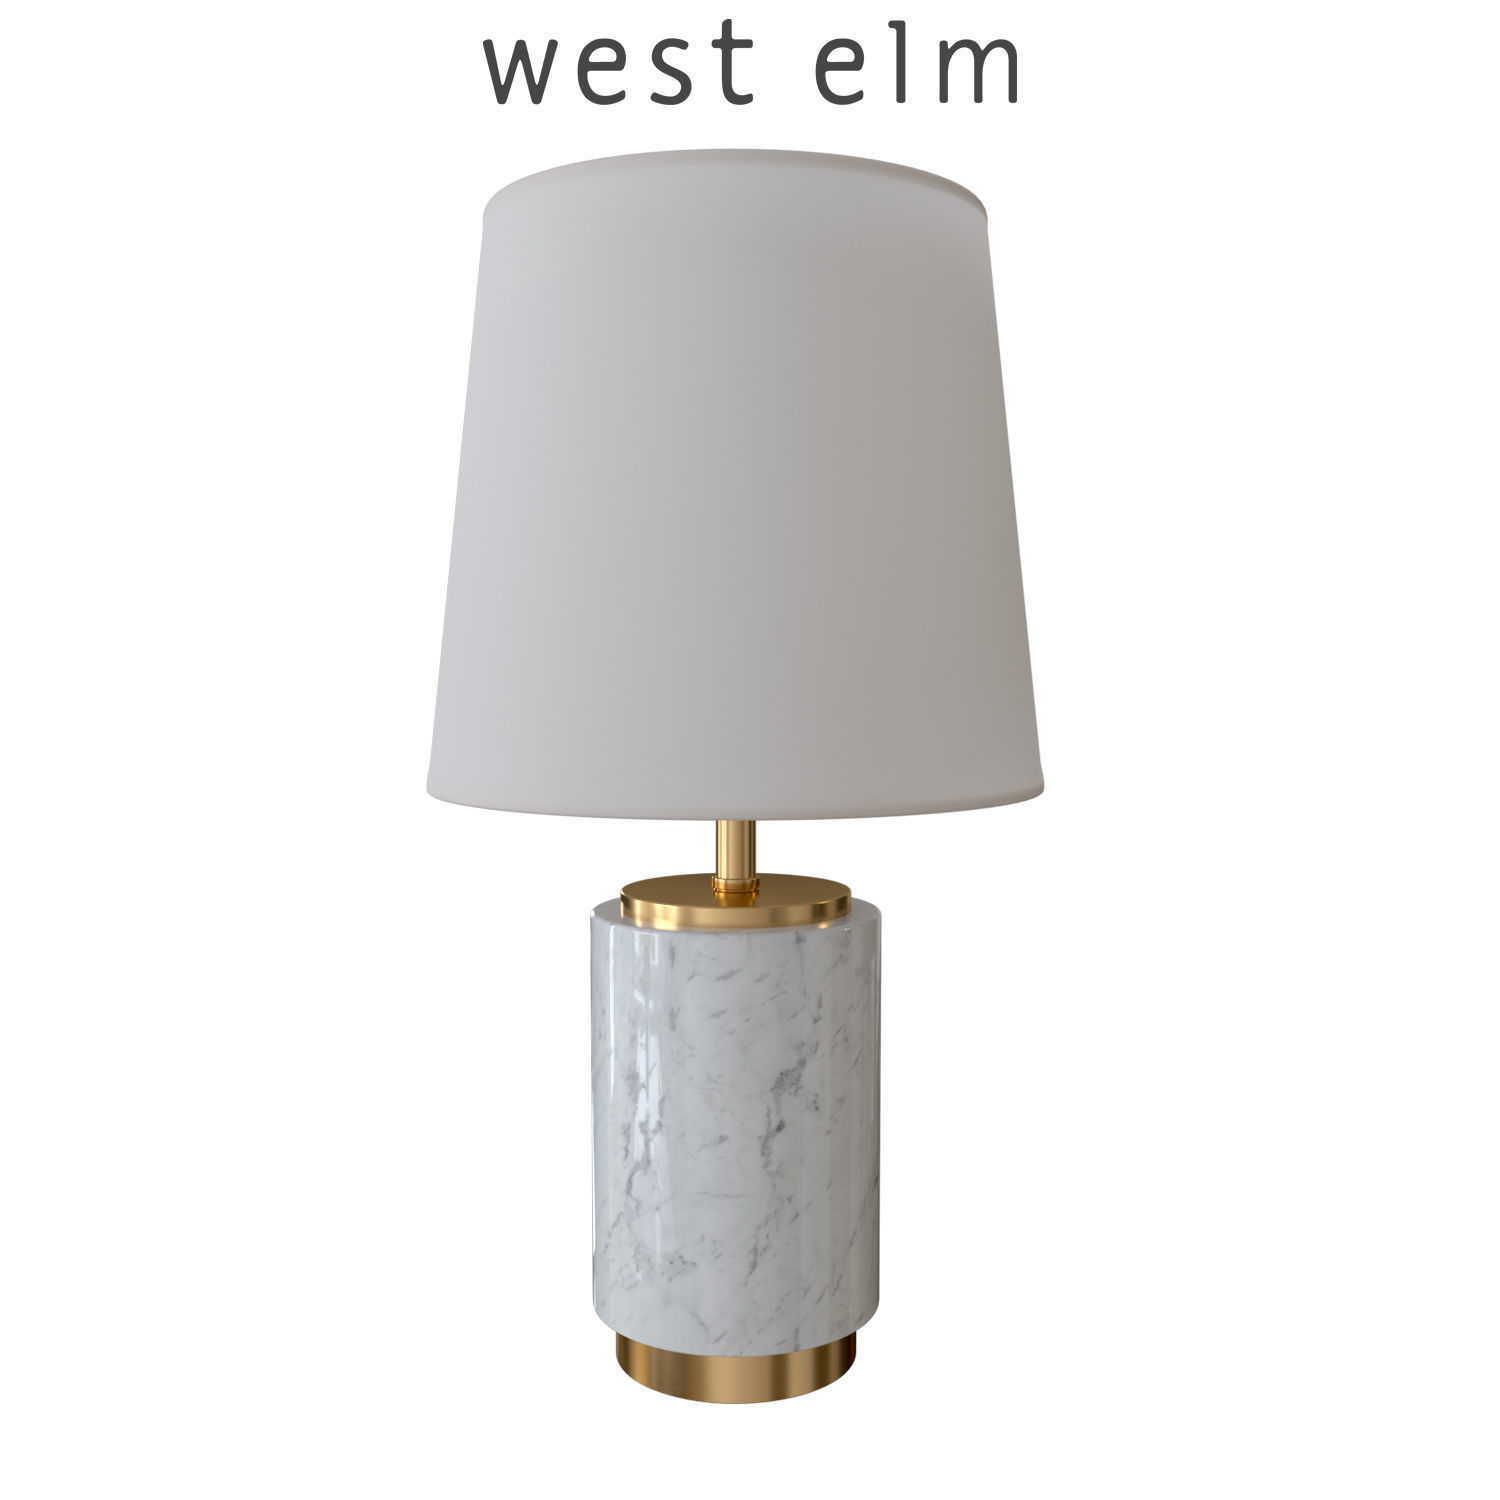 West elm small pillar table lamp 3d model cgtrader west elm small pillar table lamp 3d model max obj fbx mtl 1 aloadofball Choice Image